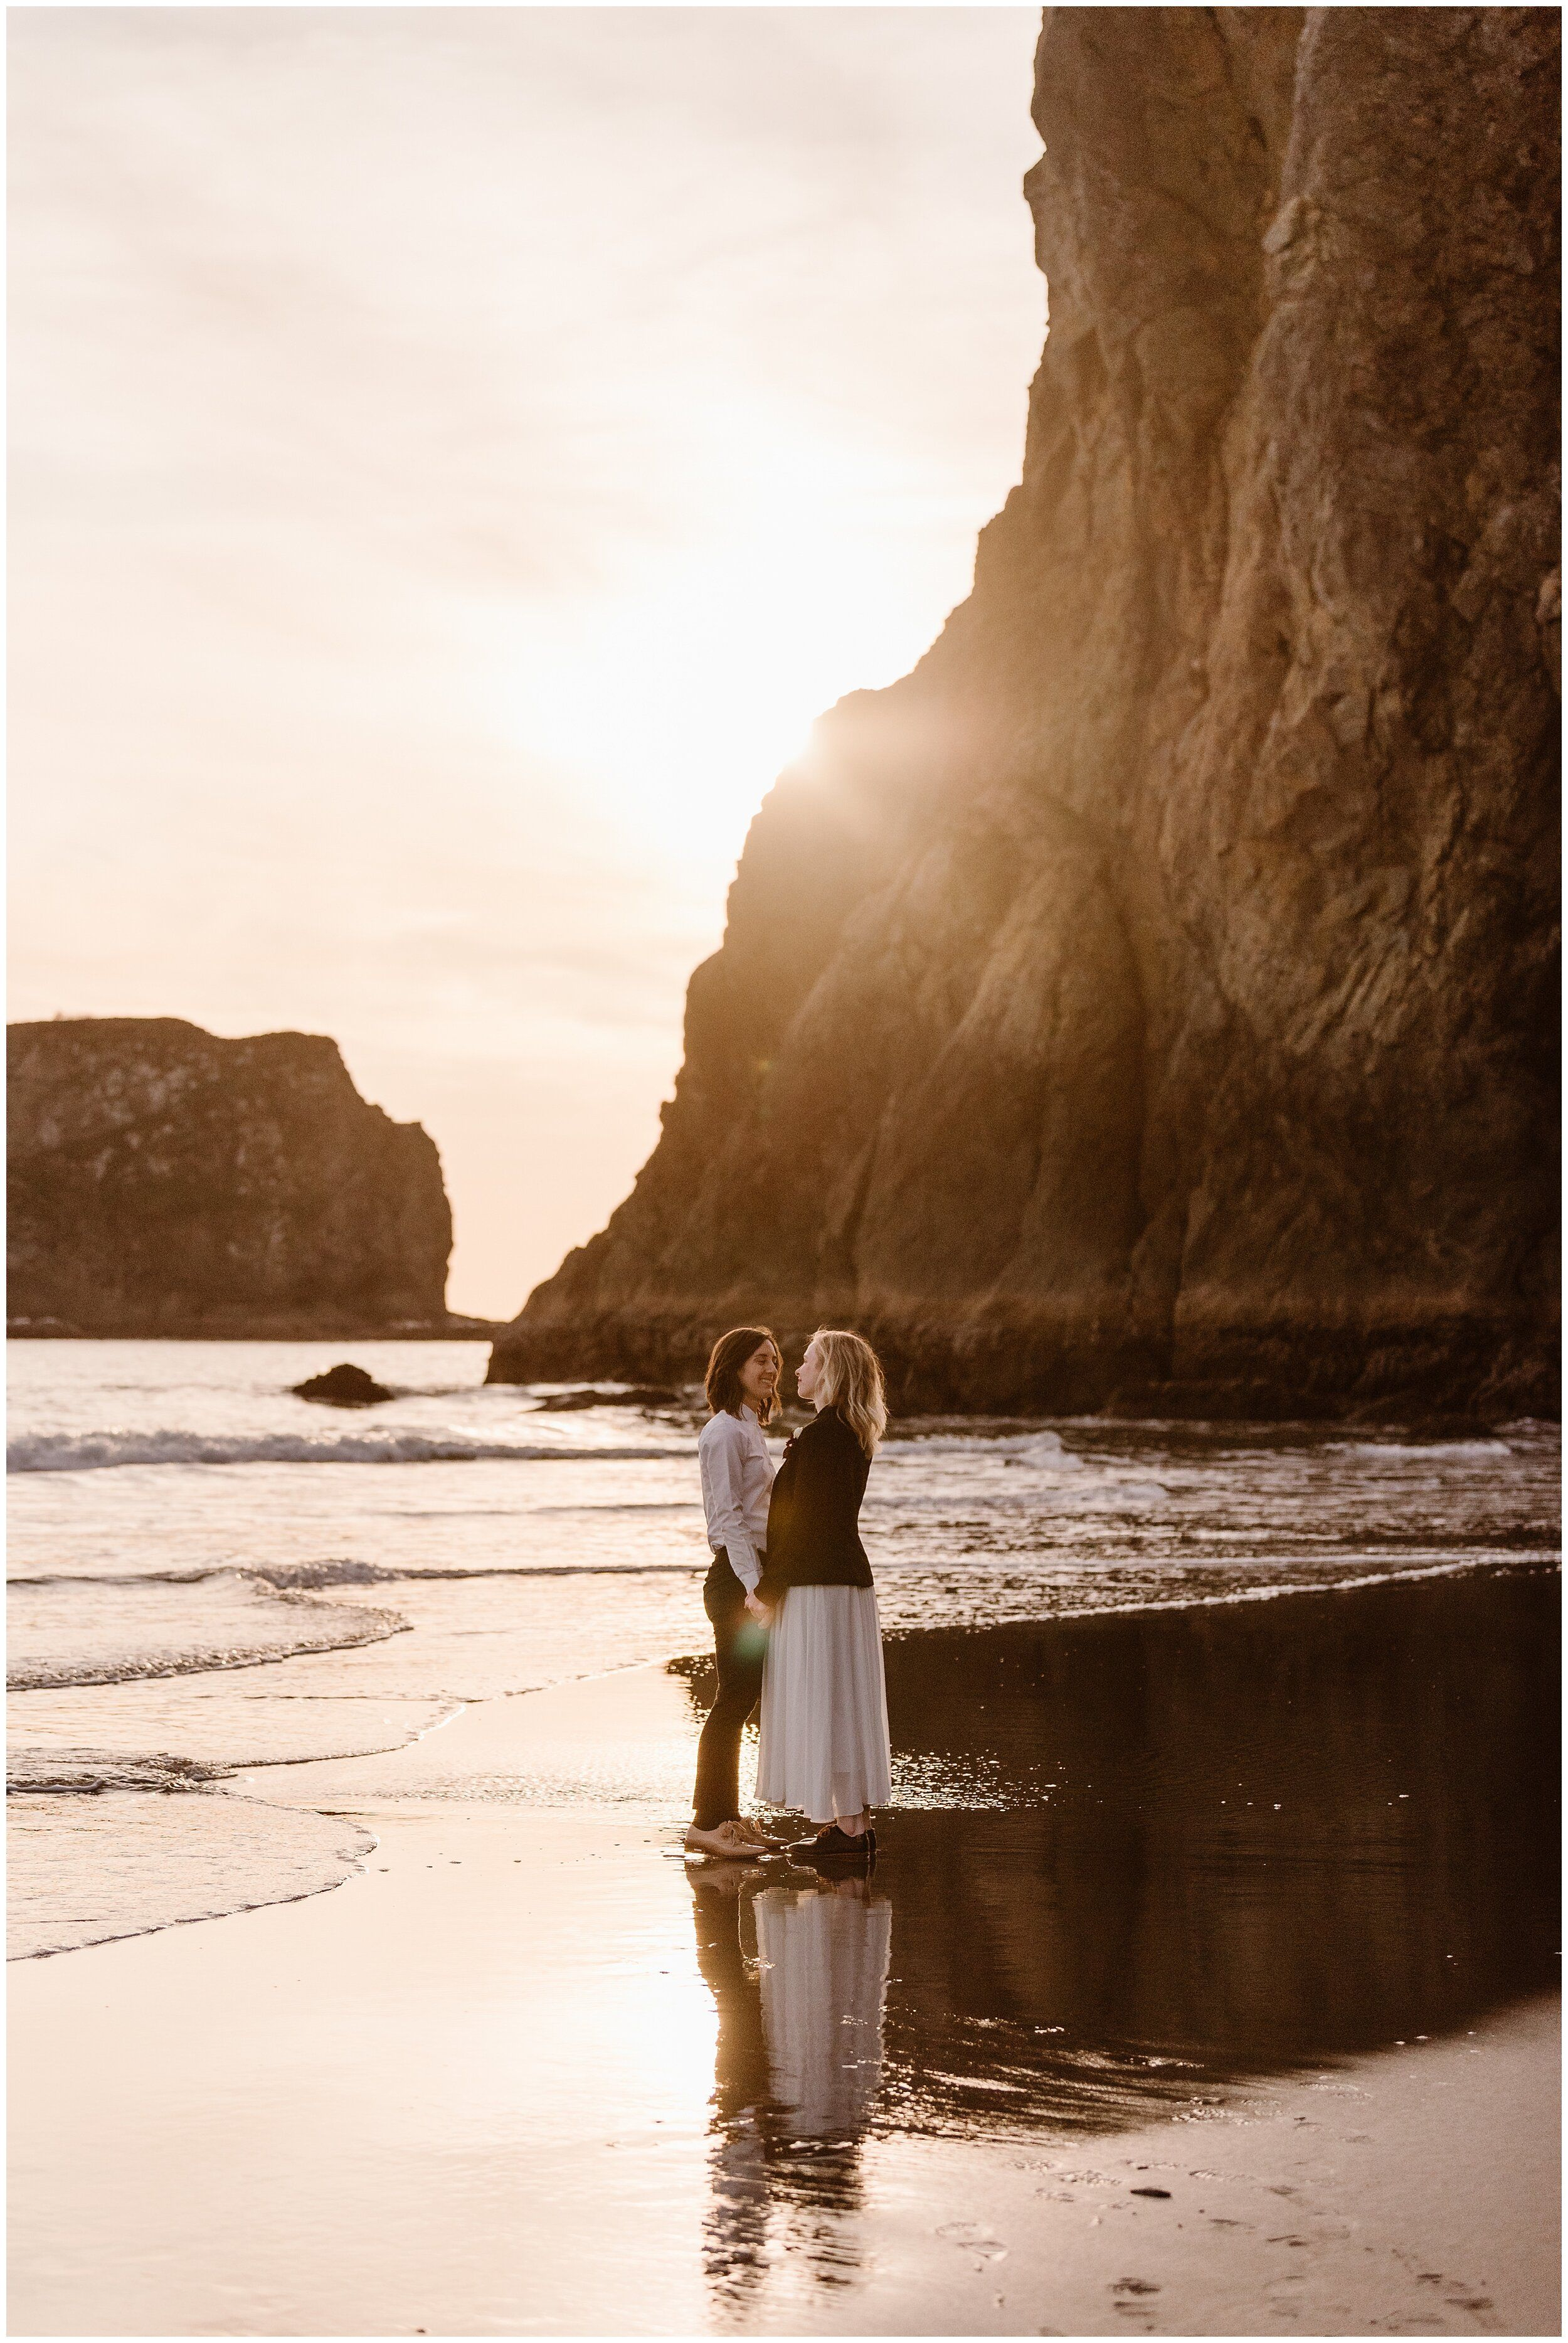 Two Brides Hold Hands On The Oregon Coast As They Explore After Their Elopement Ceremony In 2020 Oregon Coast Wedding Free Wedding Venues Beach Elopement